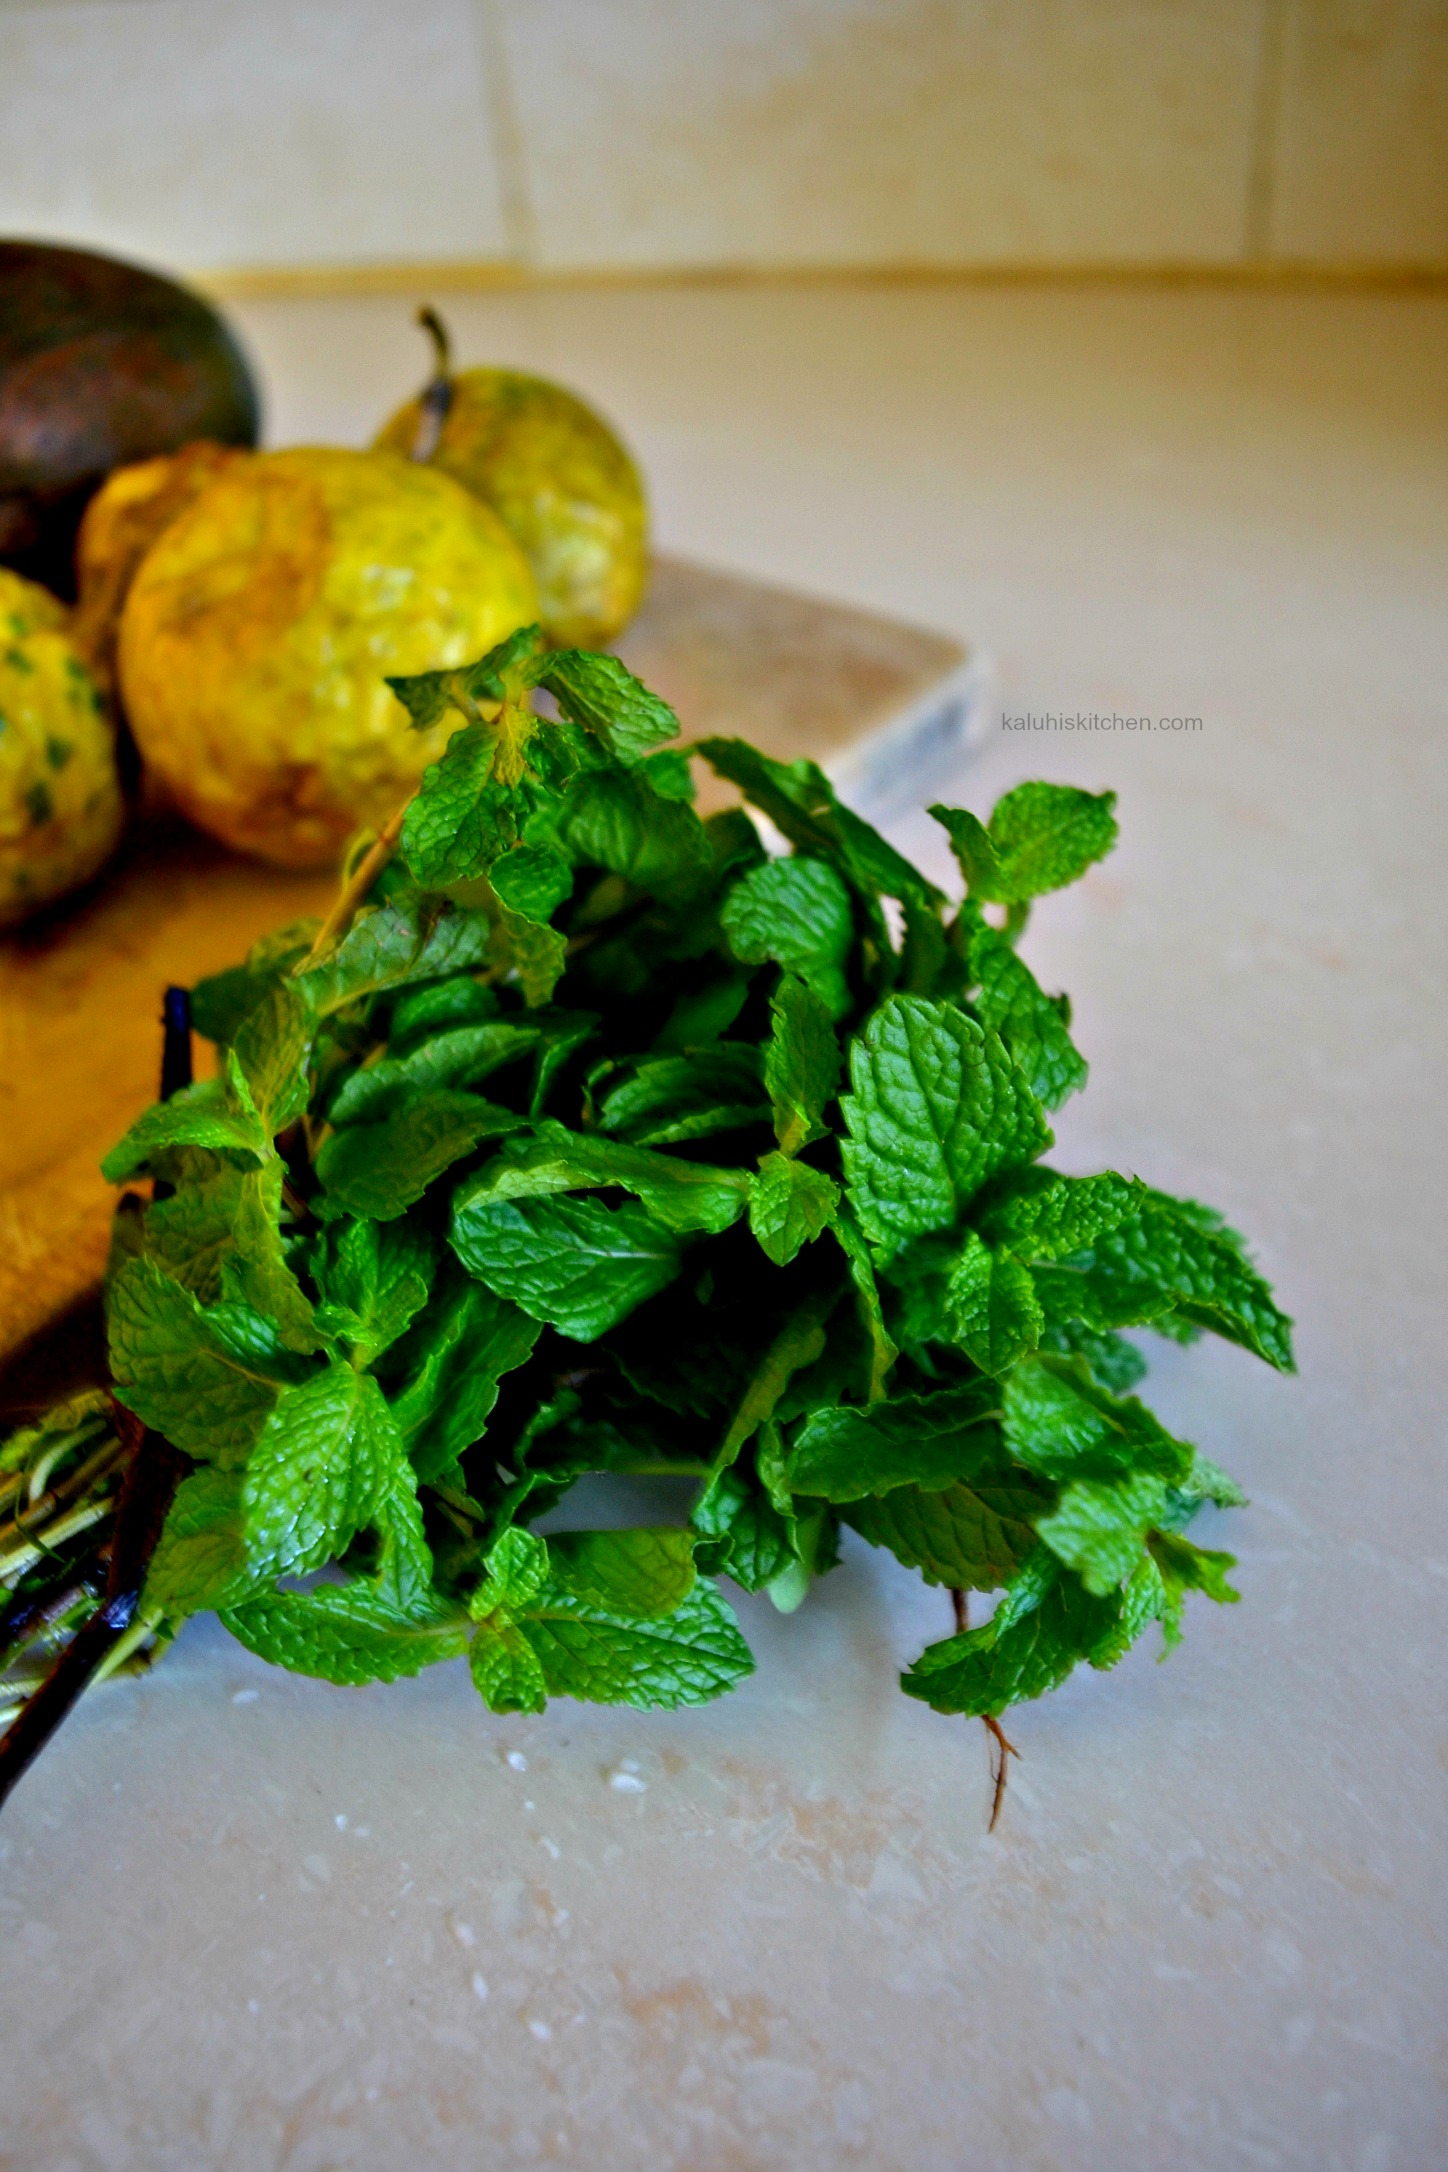 mint can be bought in all supermarkets in Kenyan cheaply and goes very well with all salads_kaluhiskitchen.com_how to add mint in your salads